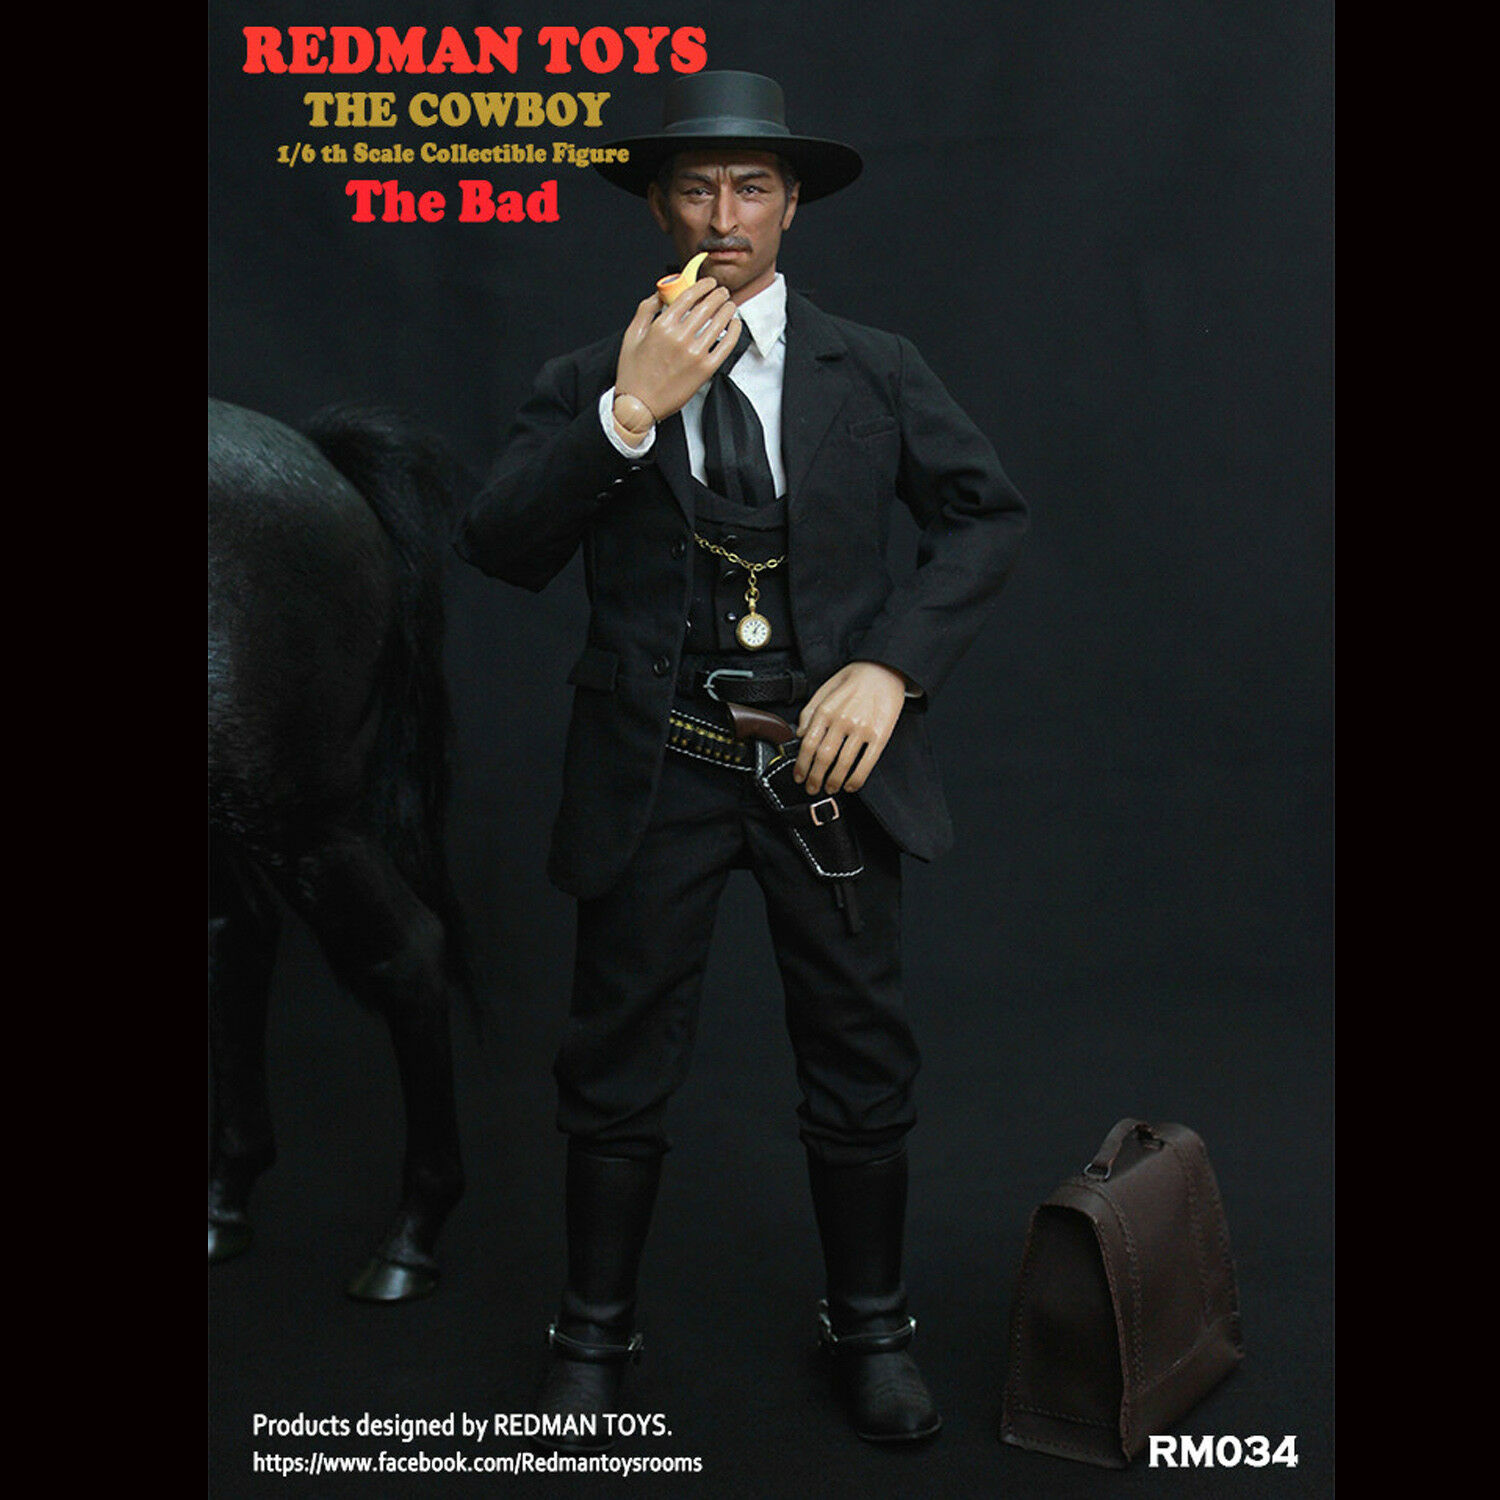 REDMAN TOYS The COWBOY The Bad 1 6 Scale Collectible Action Figure